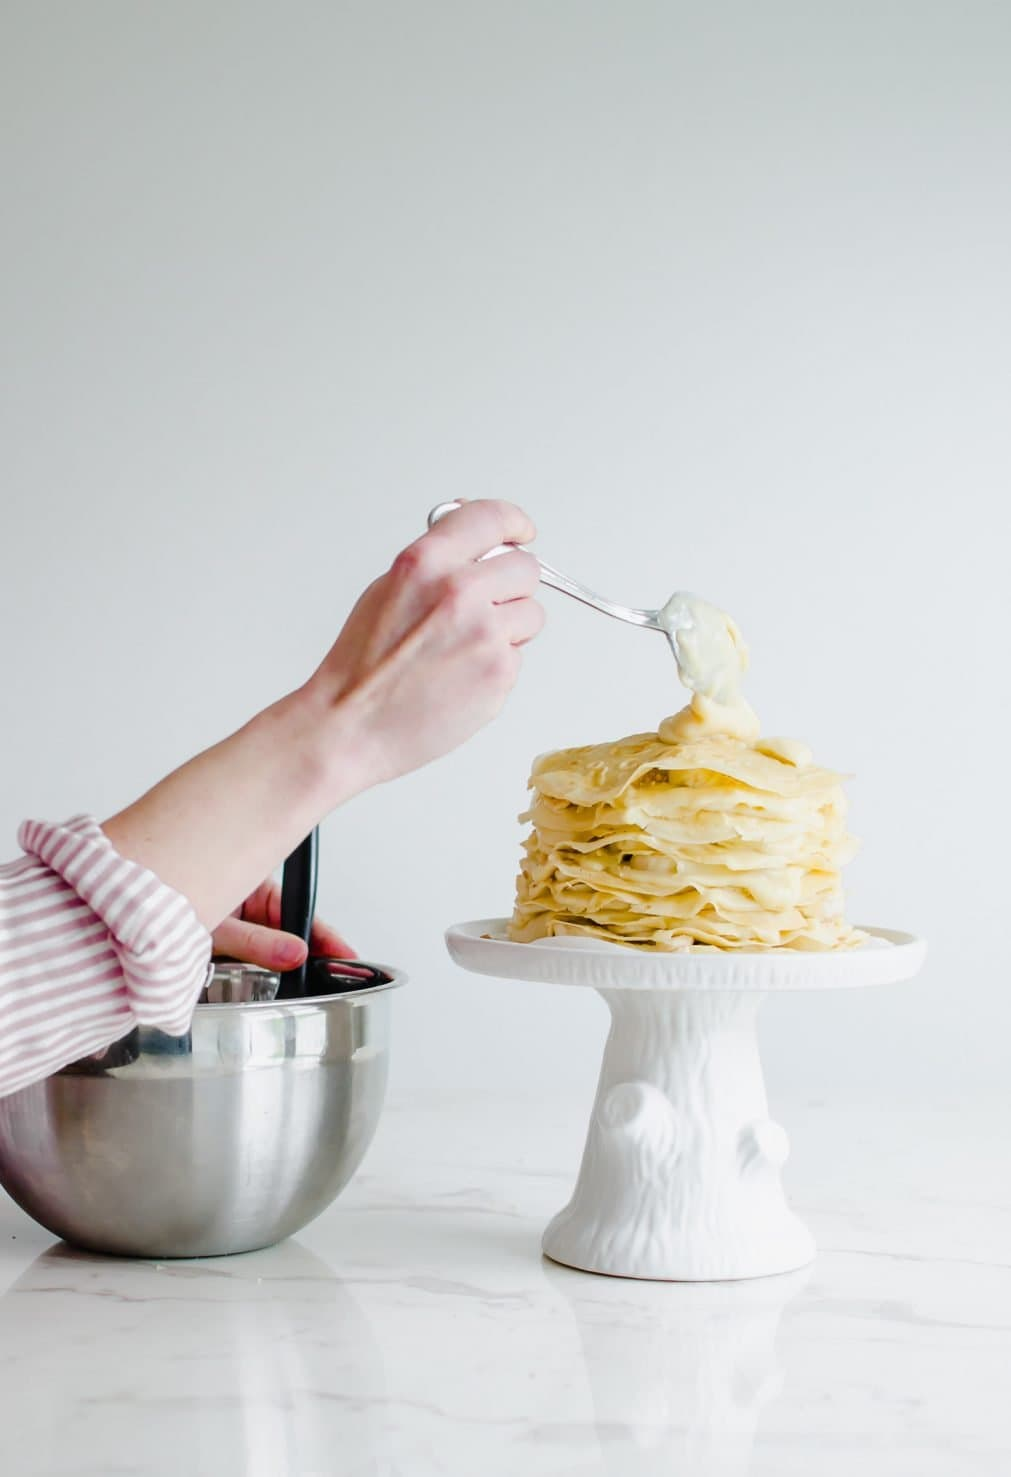 Side view of a woman's hand placing a spoonful of pudding on top of a crepe cake on a white cake pedestal.